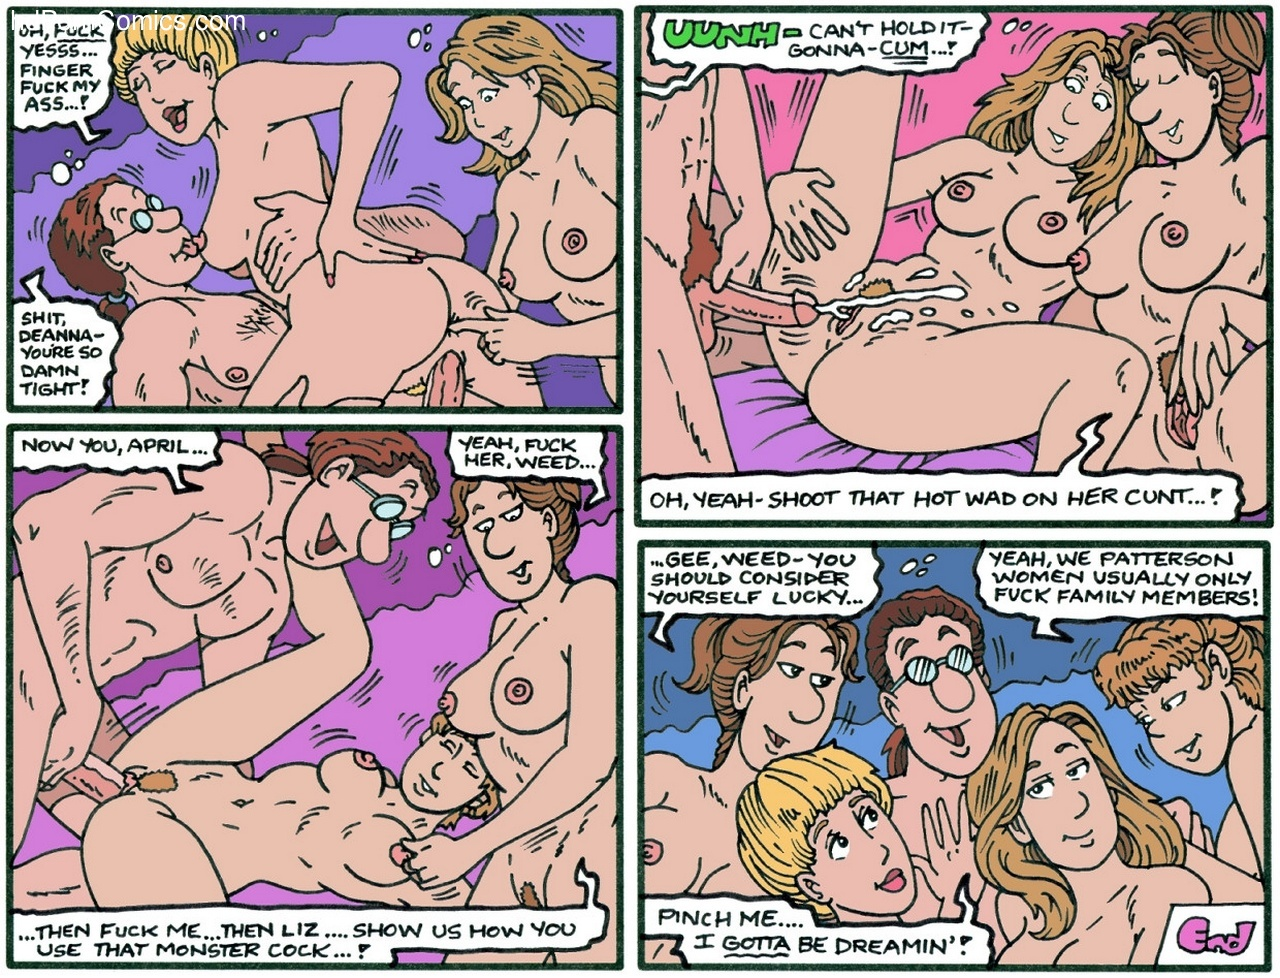 The Patterson Women In Photoshoot Sex Comic